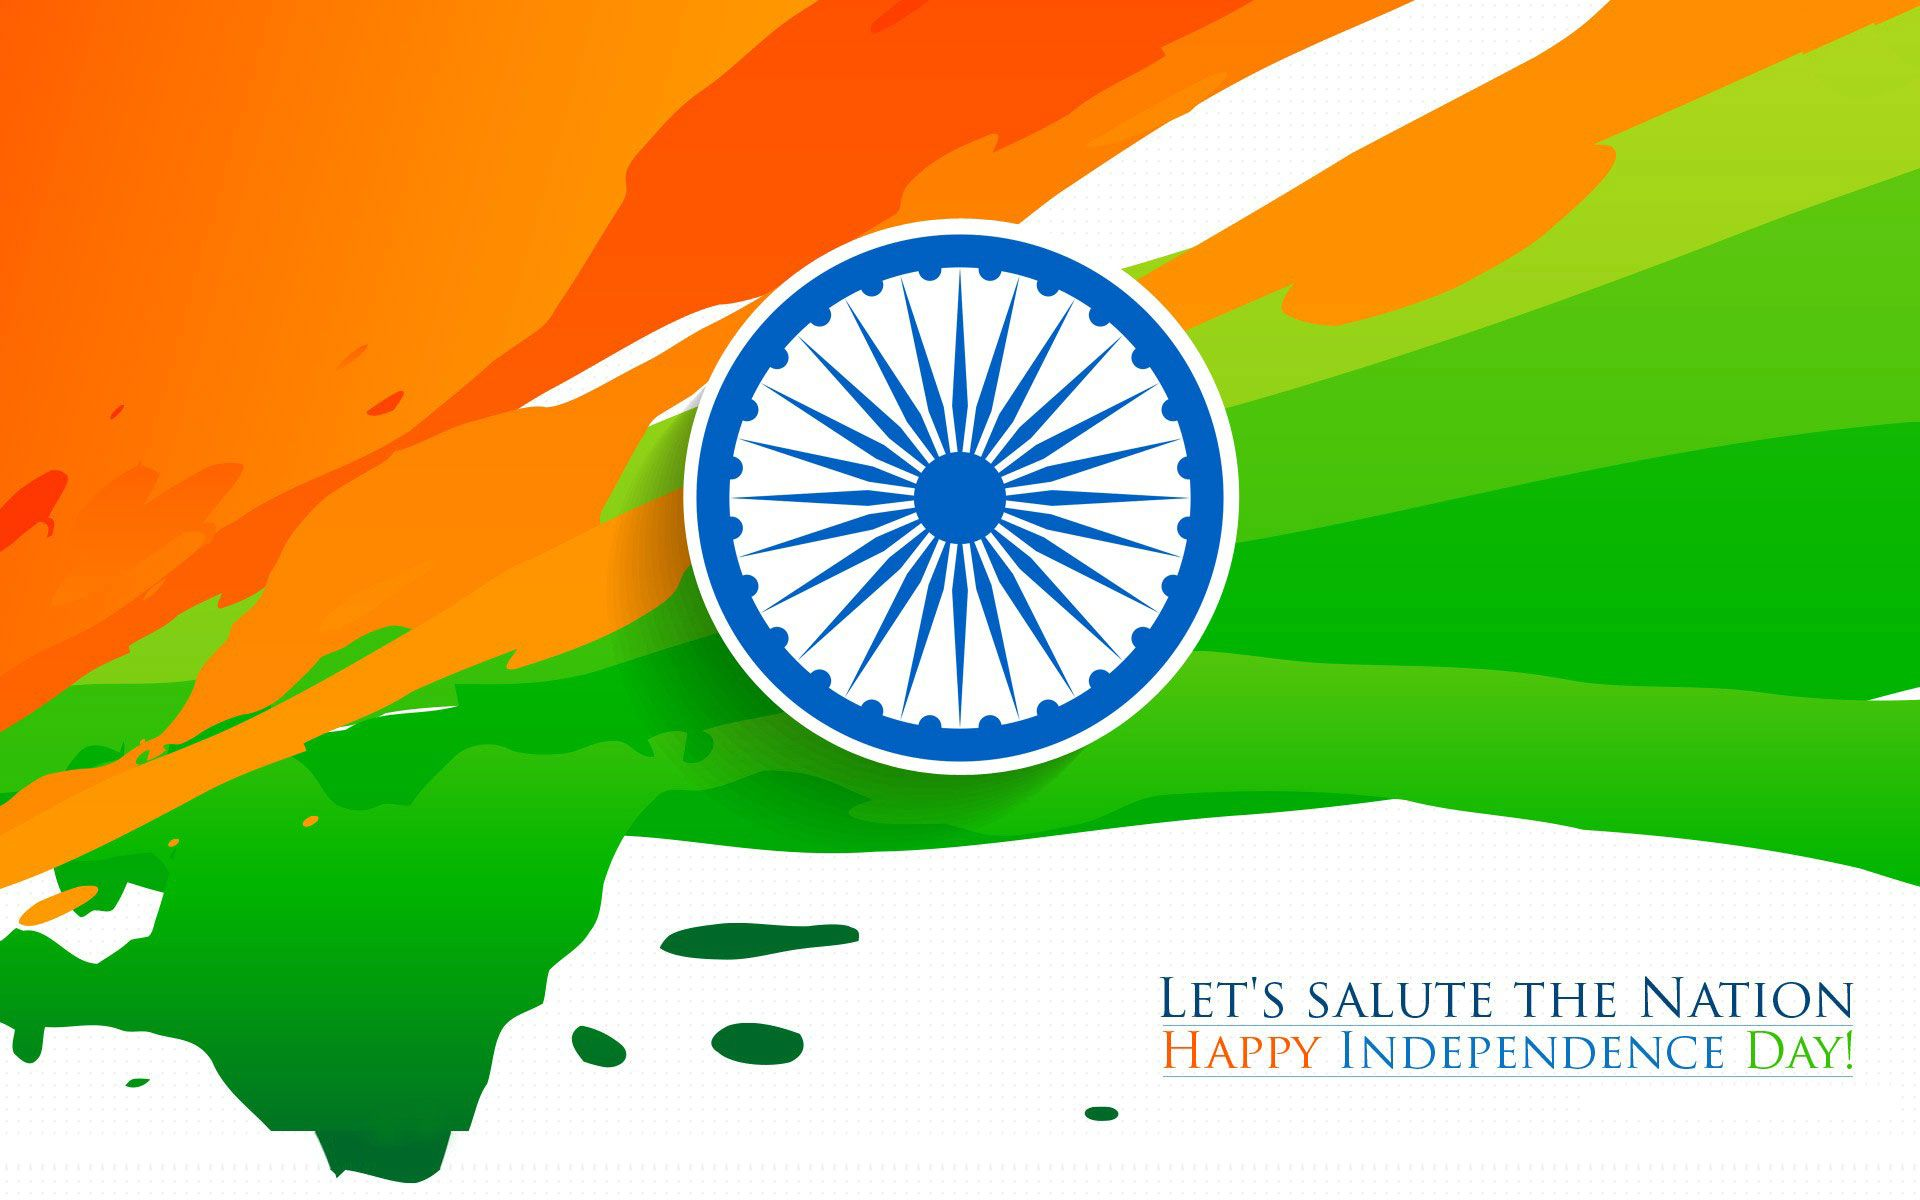 Indian Flag Images Hd720p: Happy Independence Day Indian Flag Tricolor HD Wallpaper